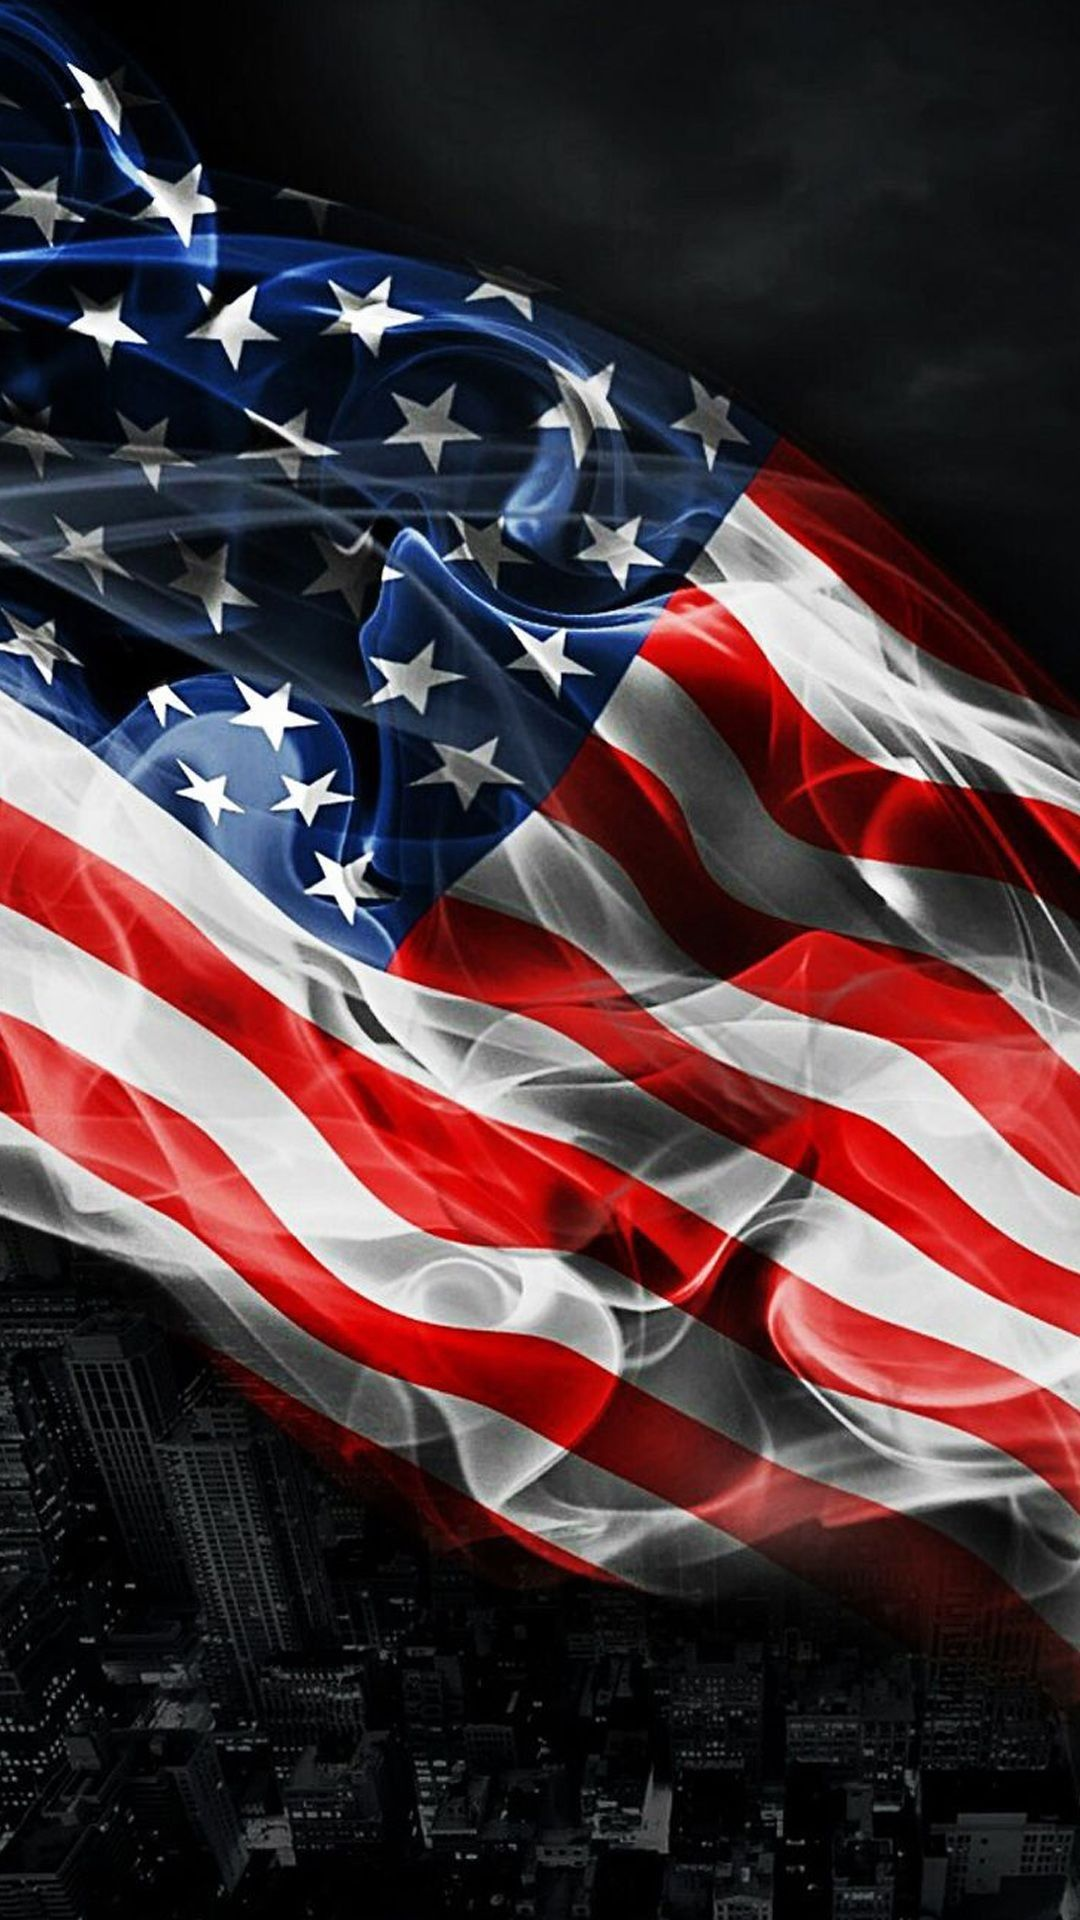 Beautiful American Flag Hd Wallpaper for Mobile (With